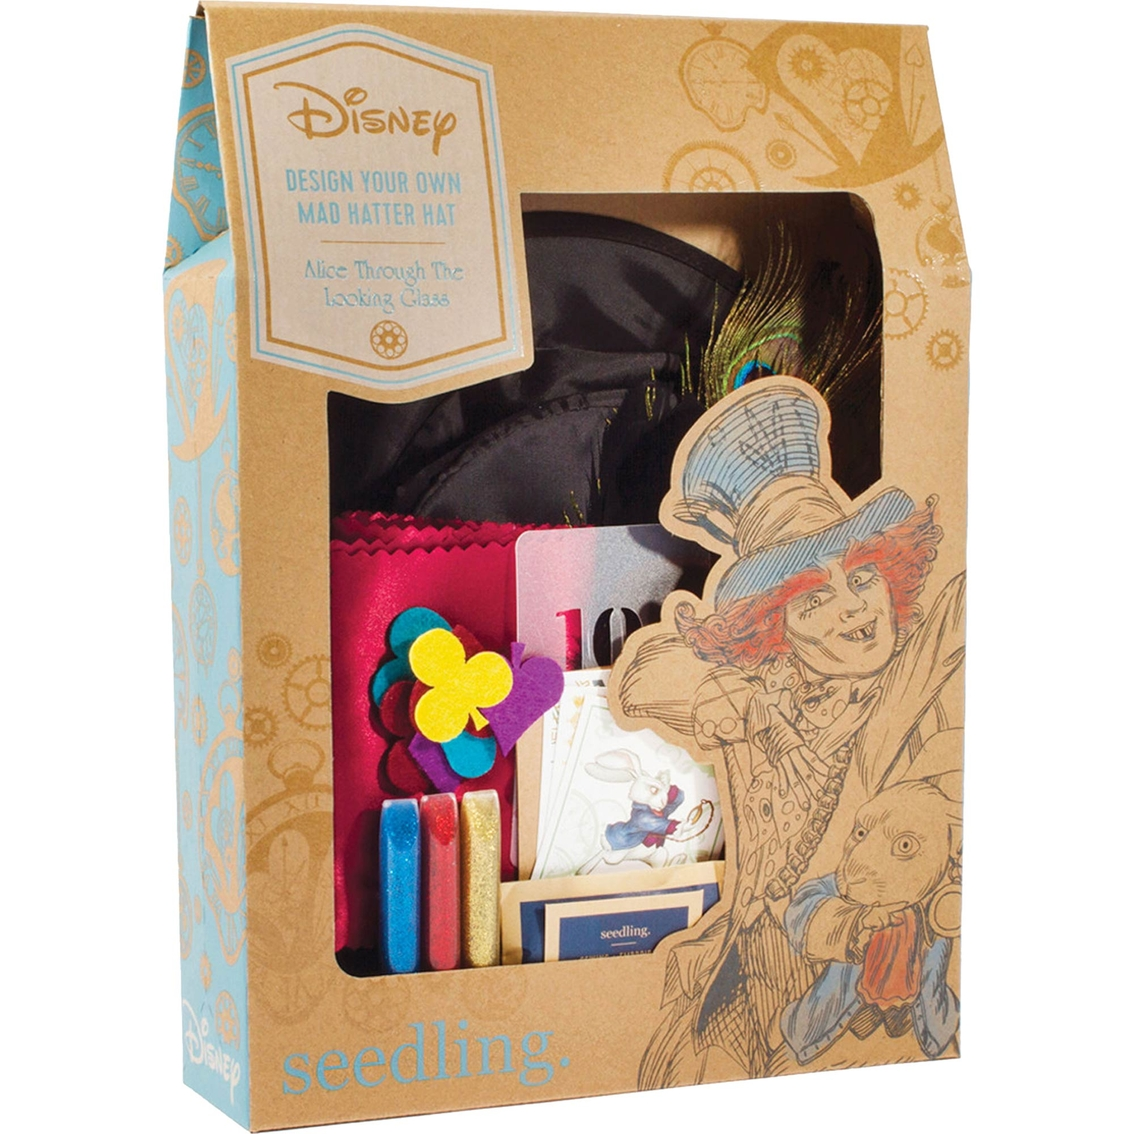 Seedling Design Your Own Mad Hatter Hat Kit Craft Kits Baby Toys Shop The Exchange